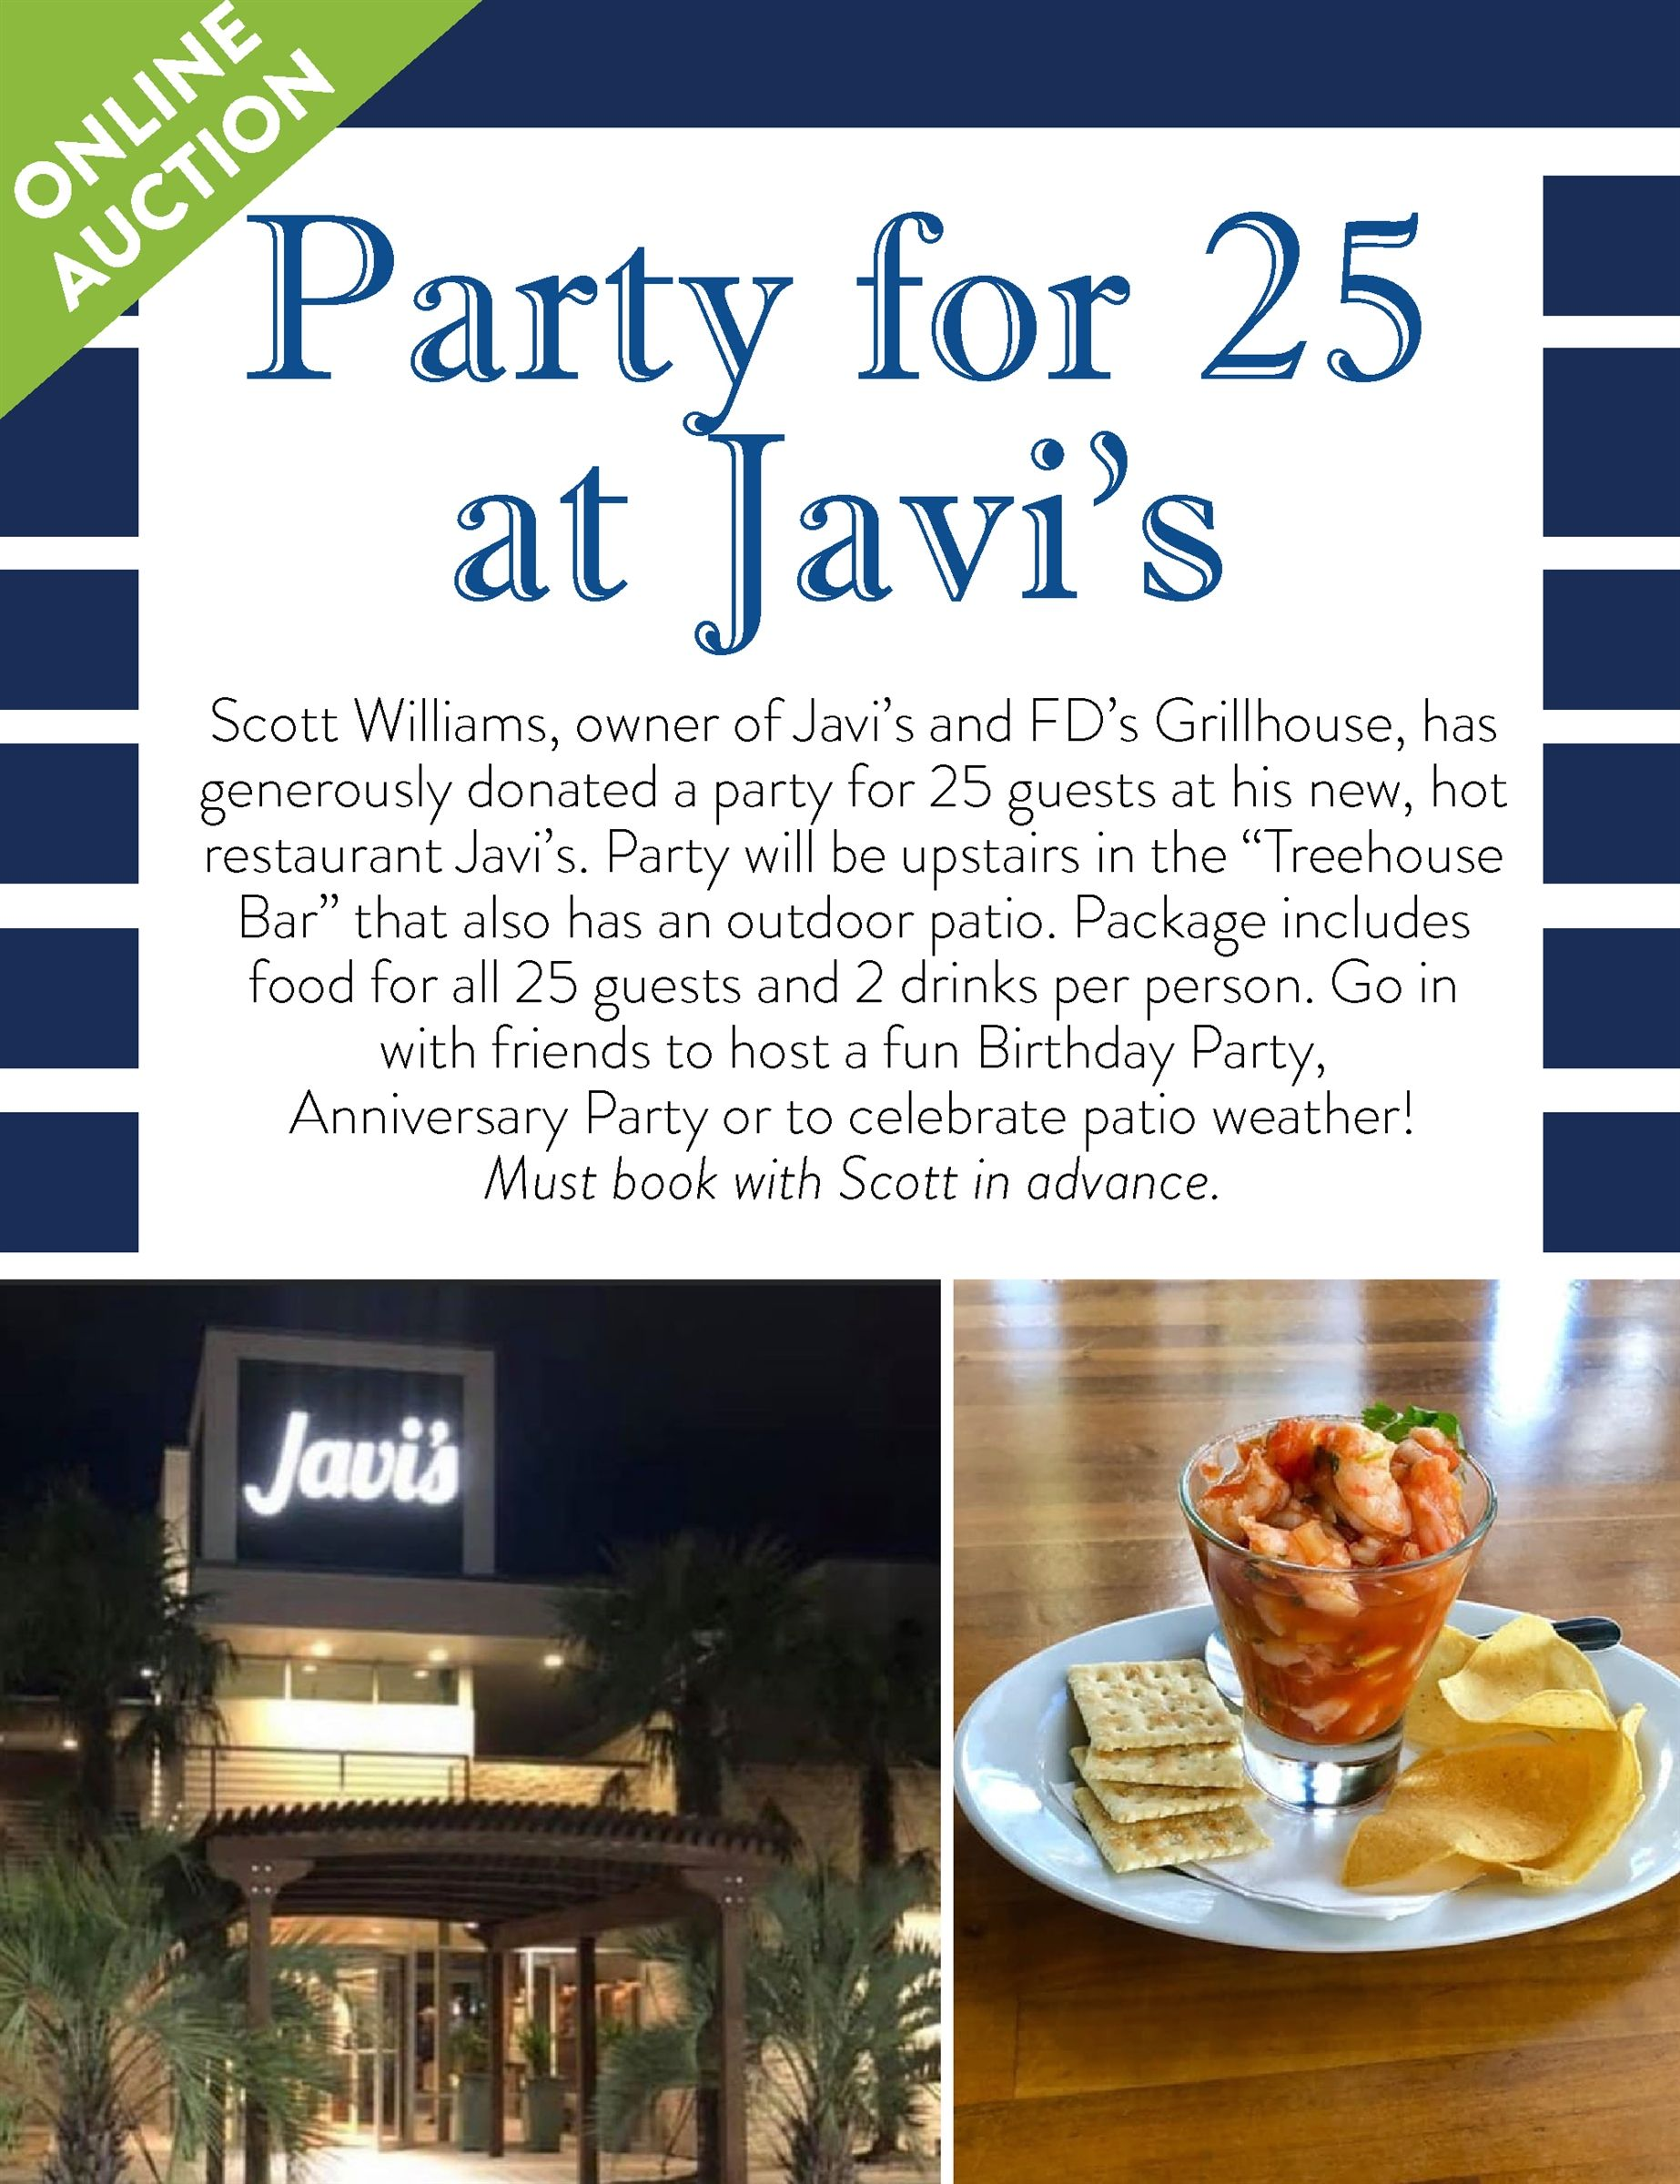 Party for 25 guests at Javi